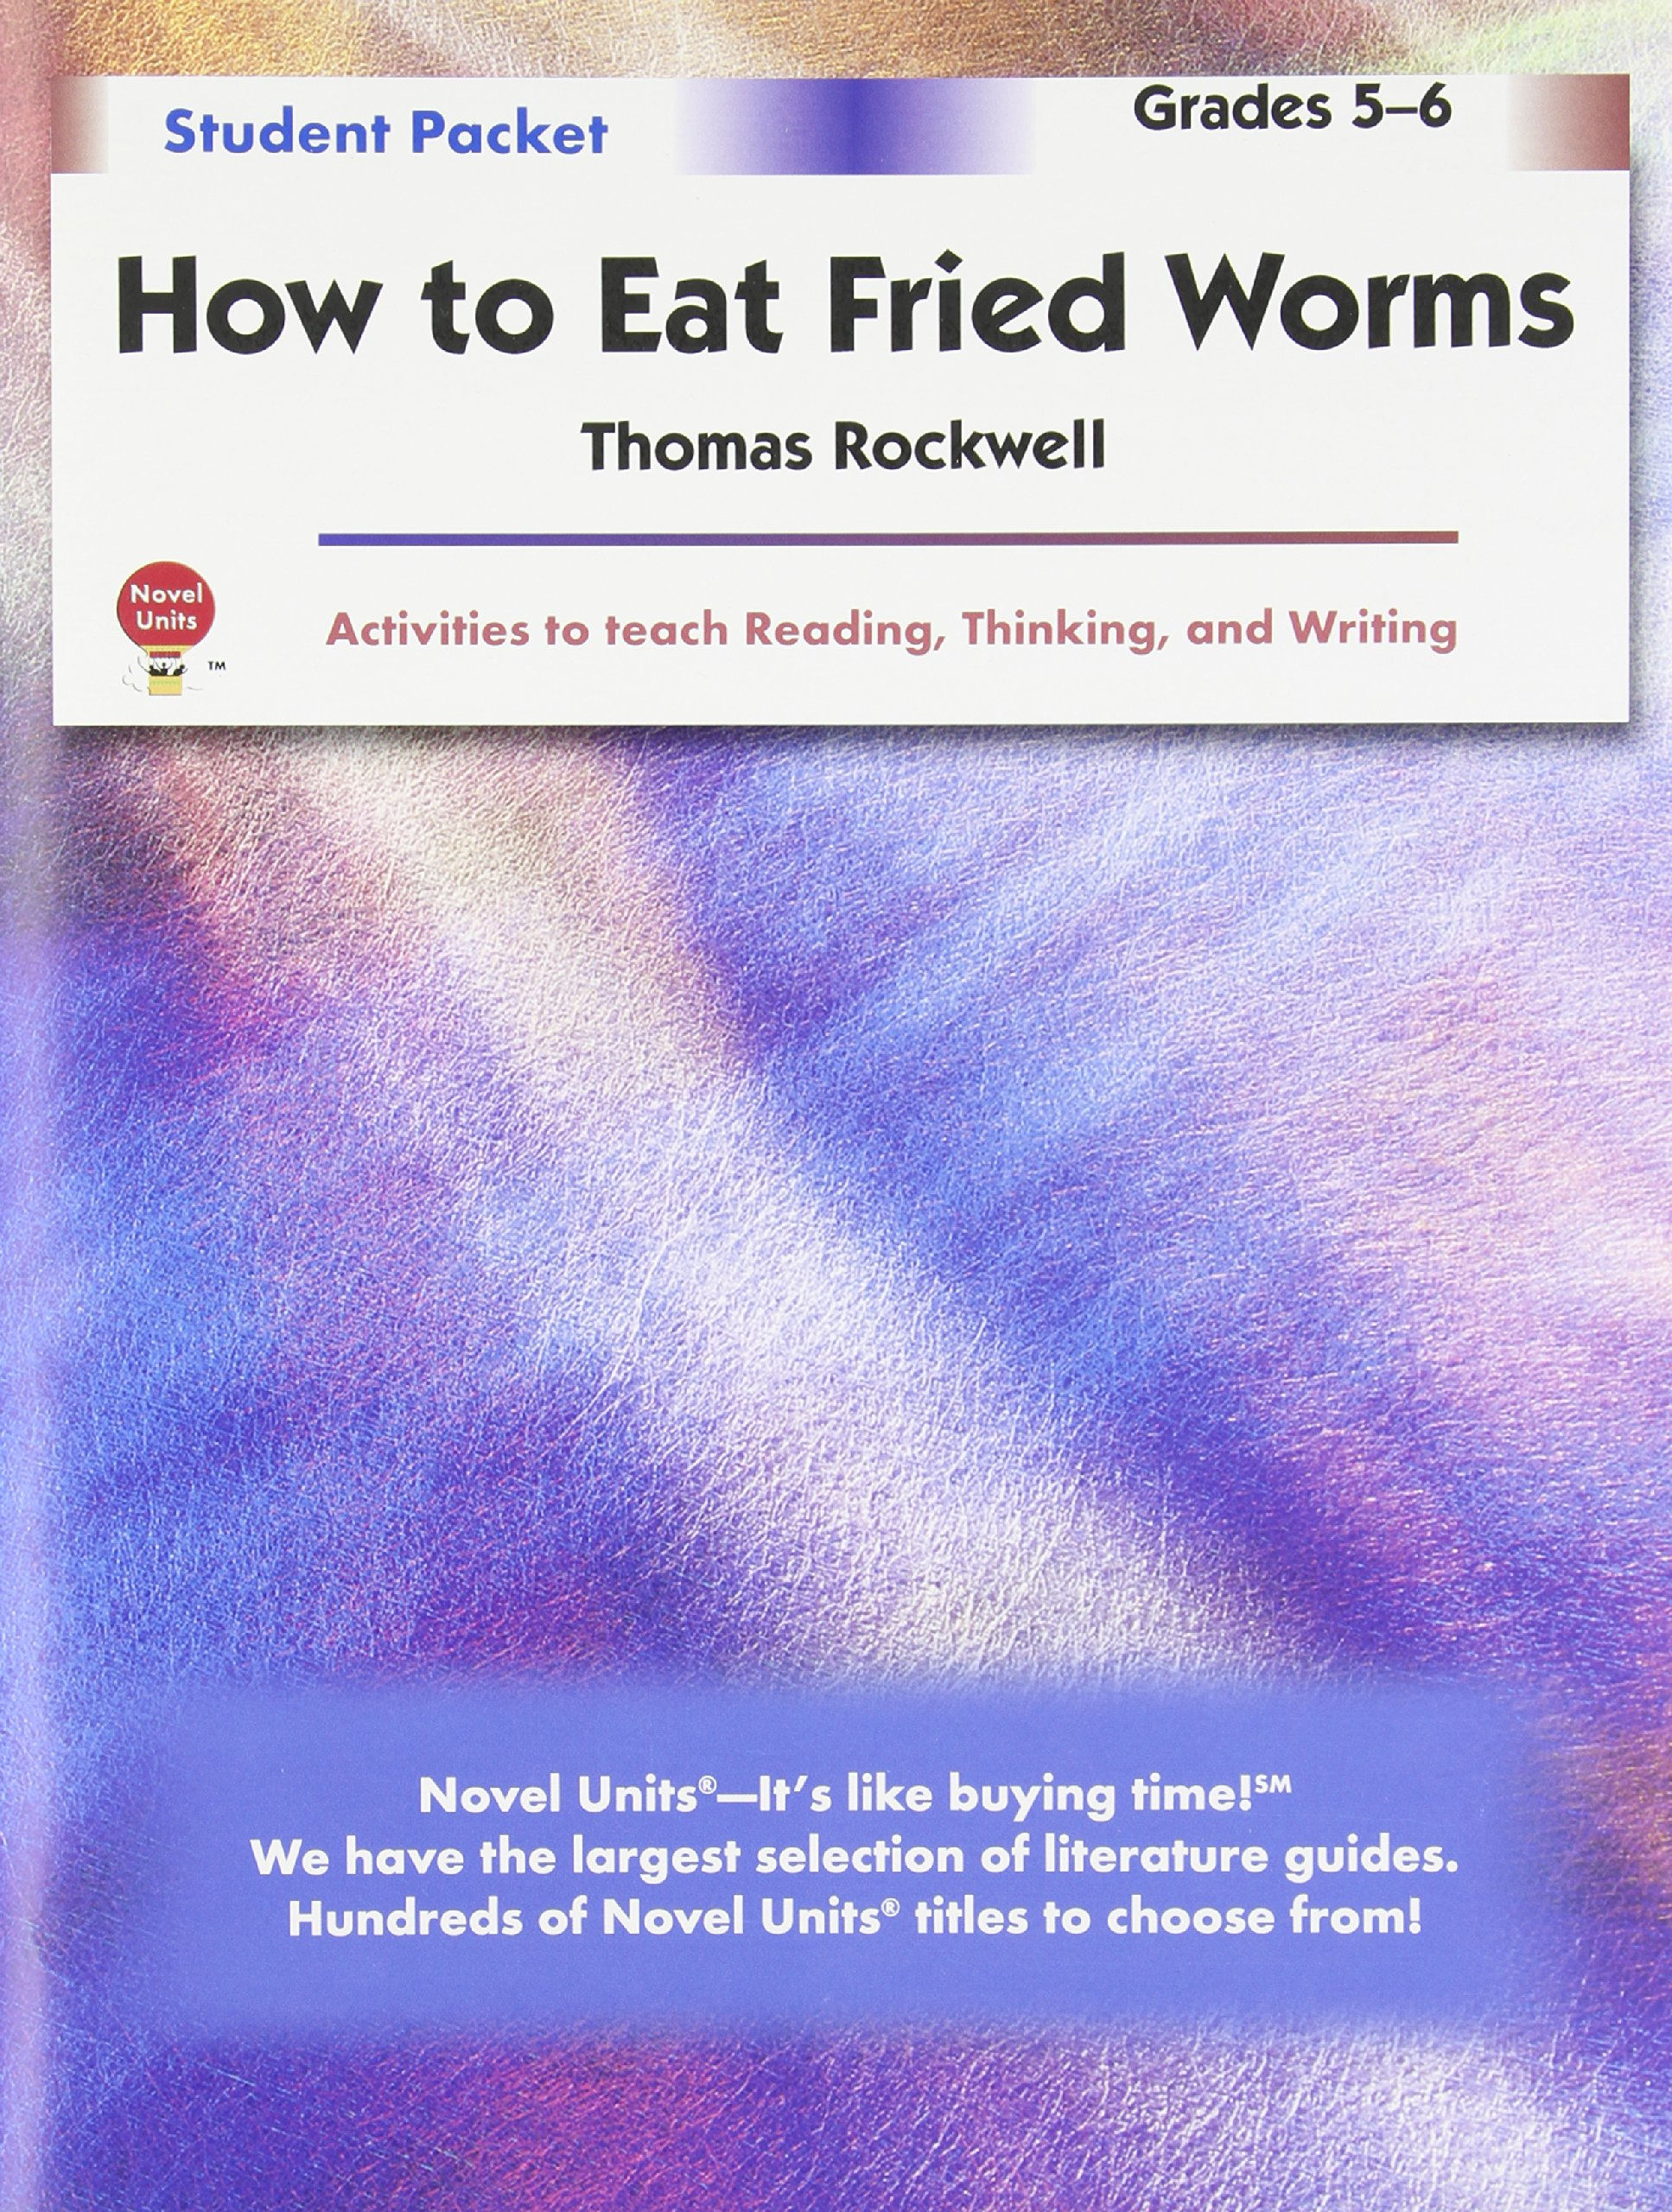 How To Eat Fried Worms Student Packet By Novel Units, Inc: Novel Units,